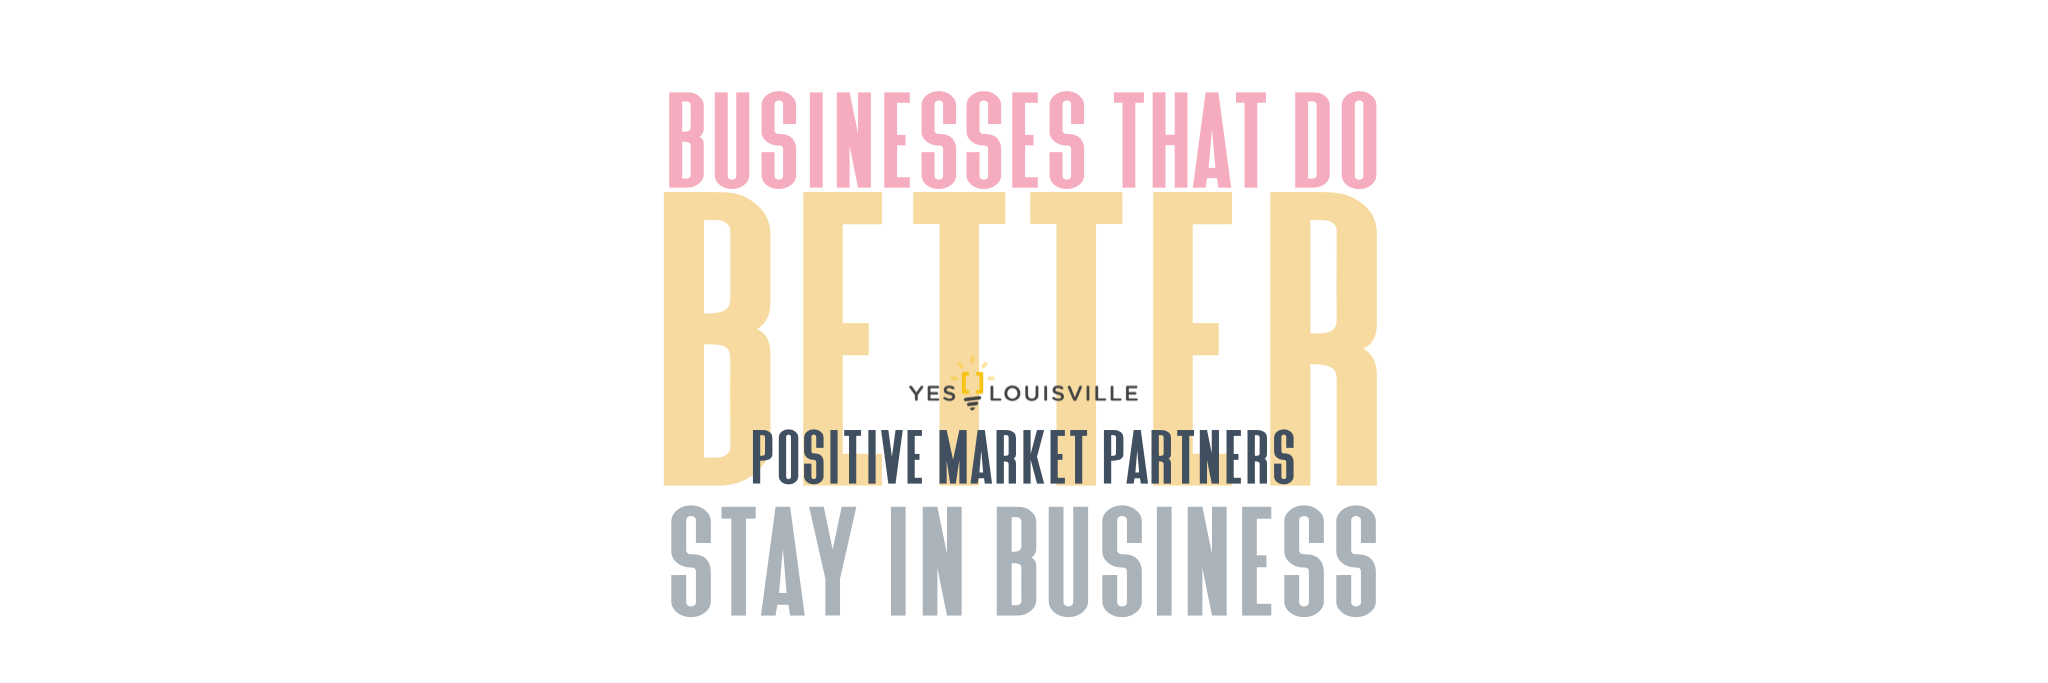 Yes Louisville Positive Market Partners Better Businesses in Louisville